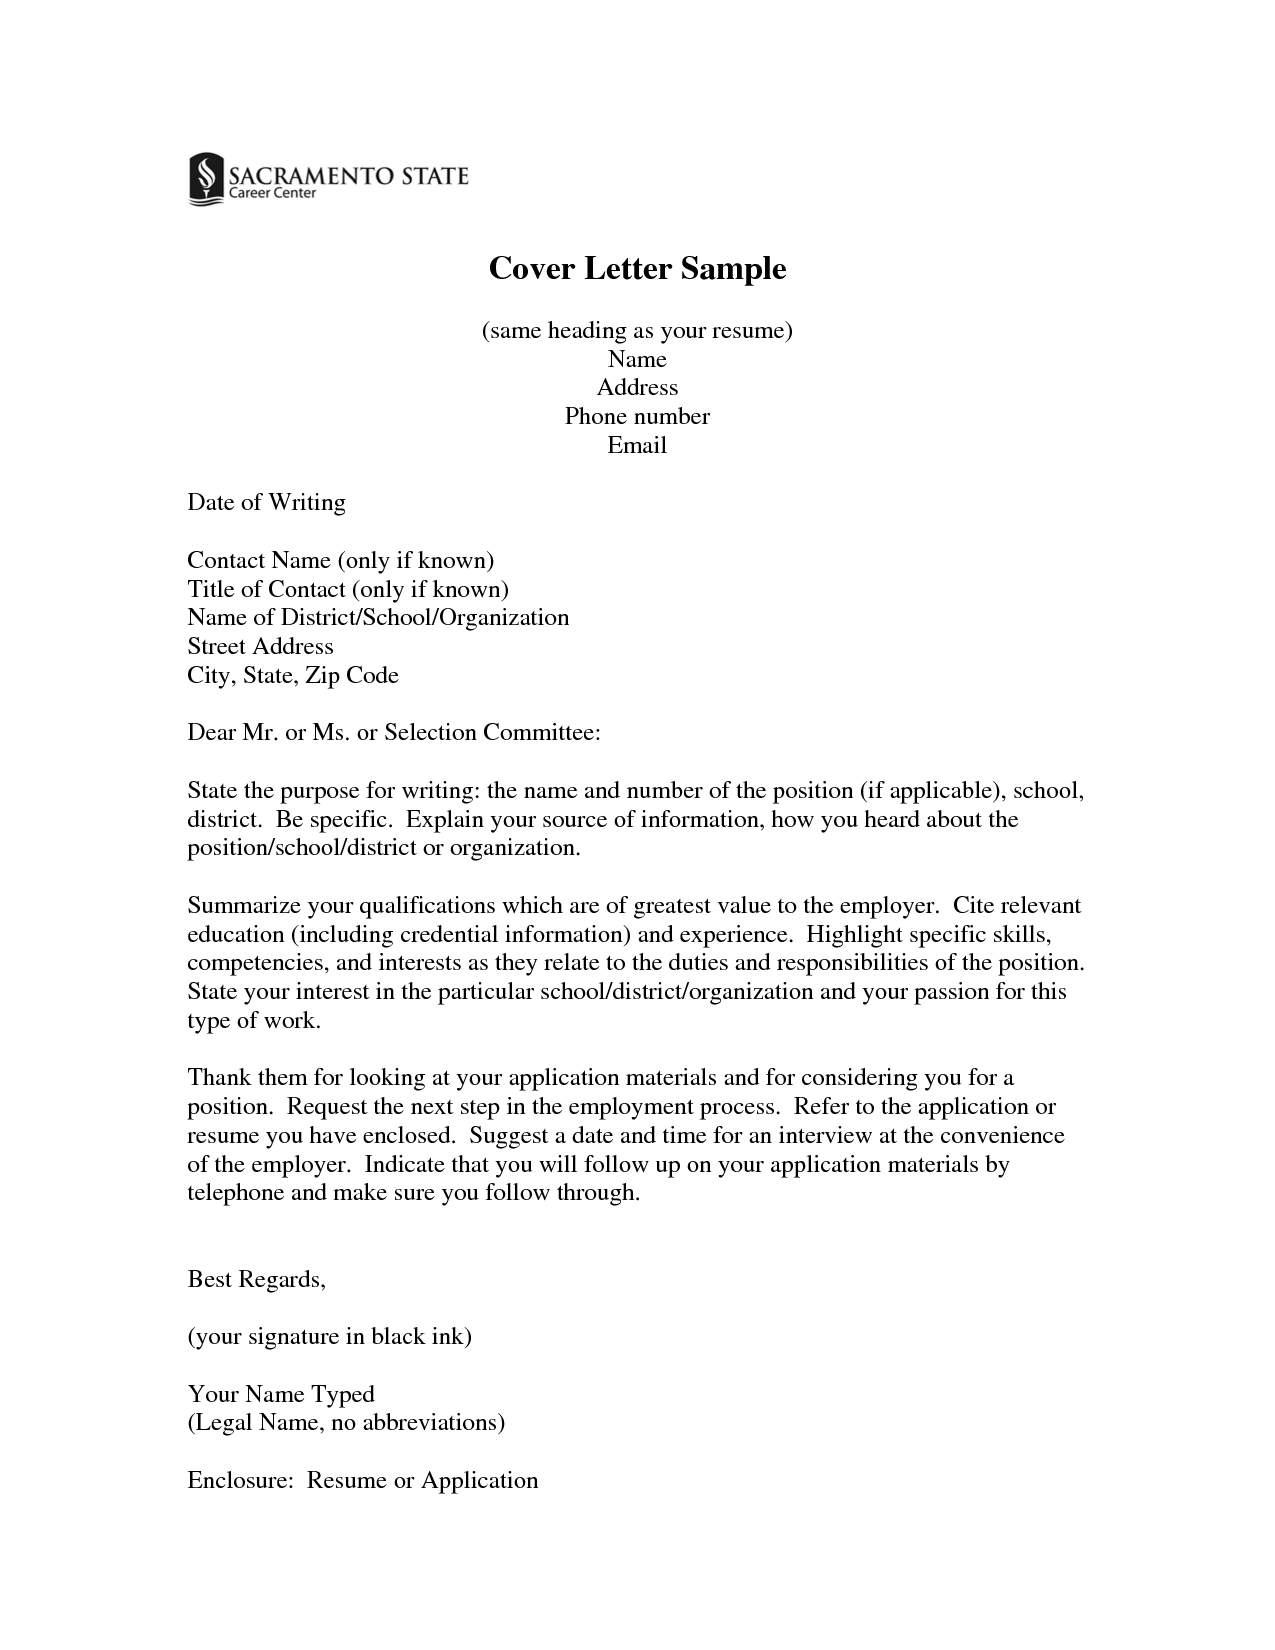 Nice Same Cover Letters For Resume | Cover Letter Sample Same Heading As Your  Resume Name Address  Resume And Cover Letter Help